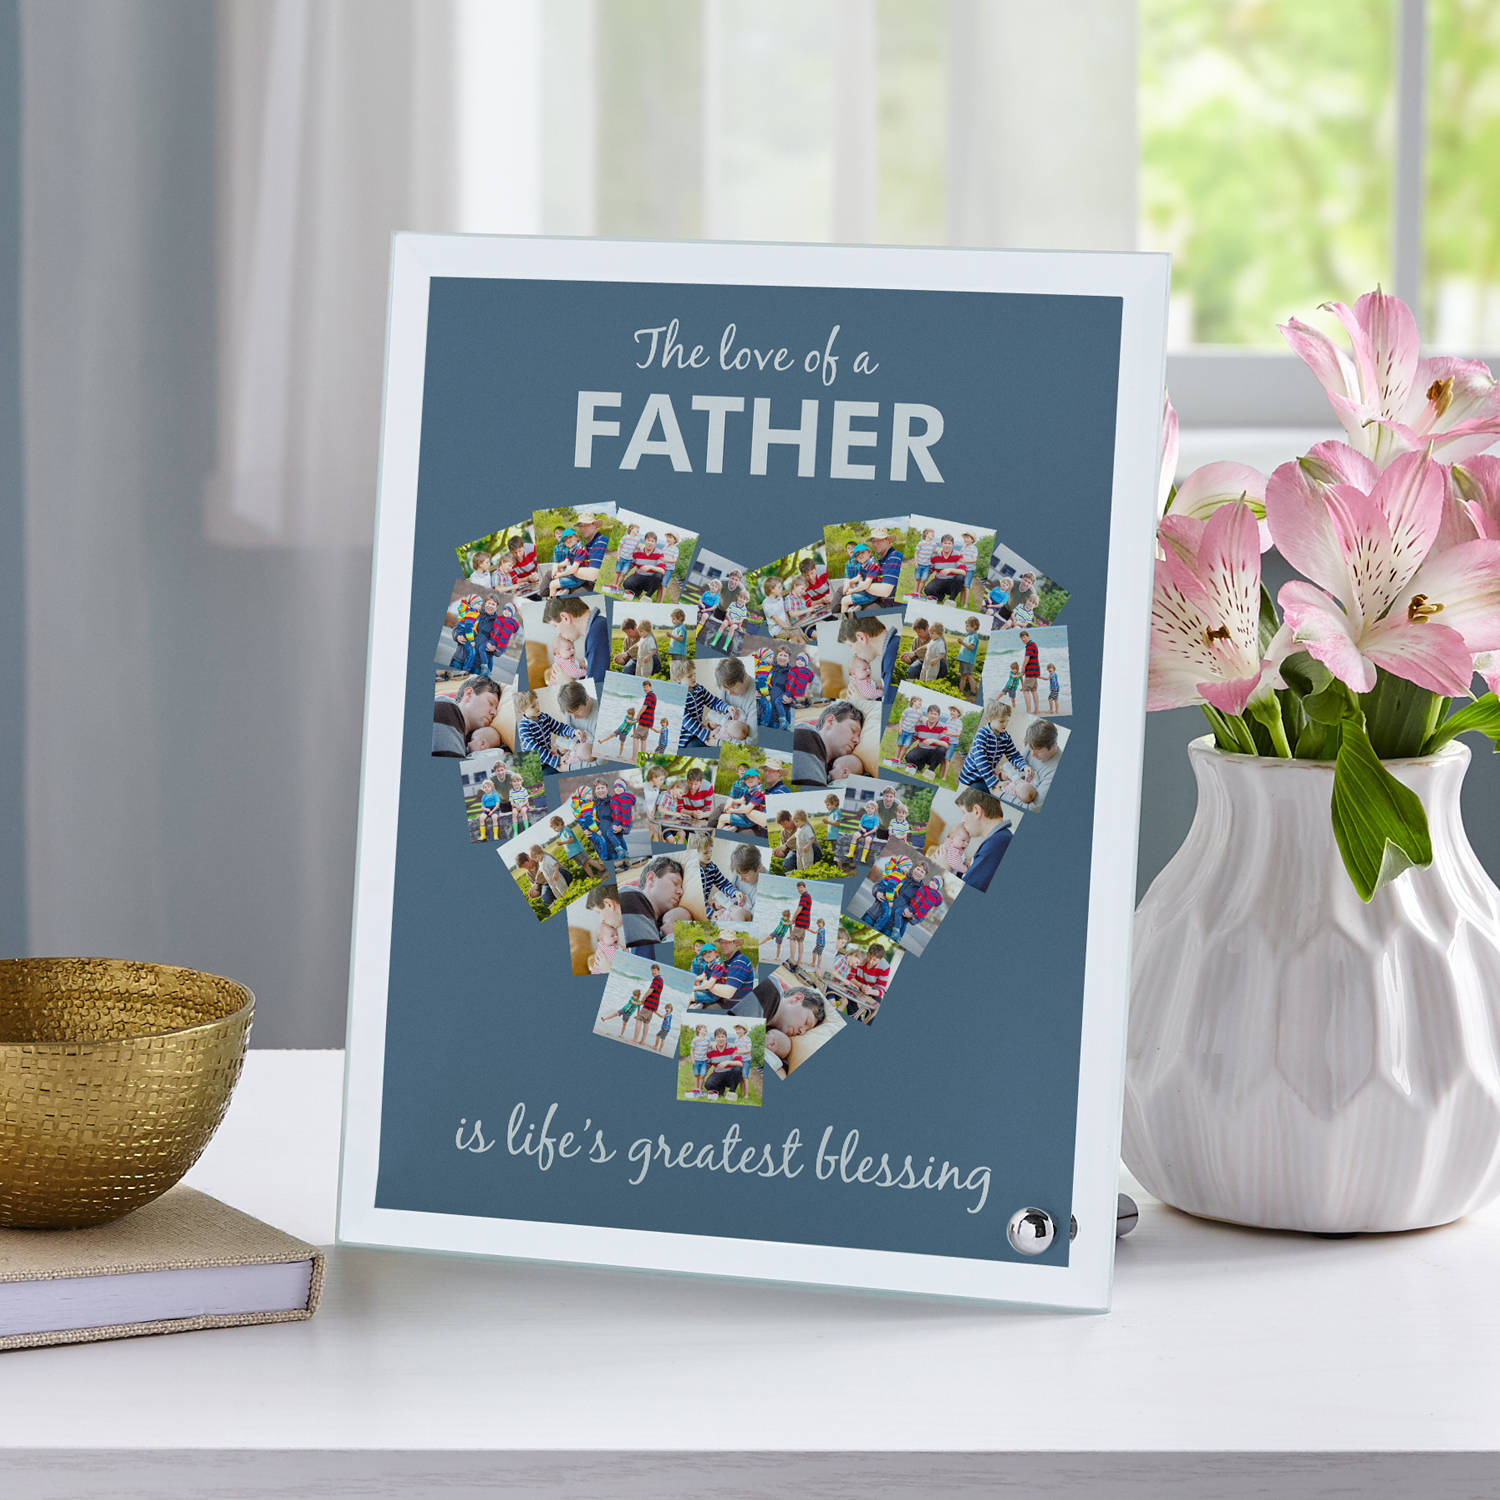 "Personalized From The Heart Glass Photo Frame 7""W x 9""H, Available in Blue or Gray"